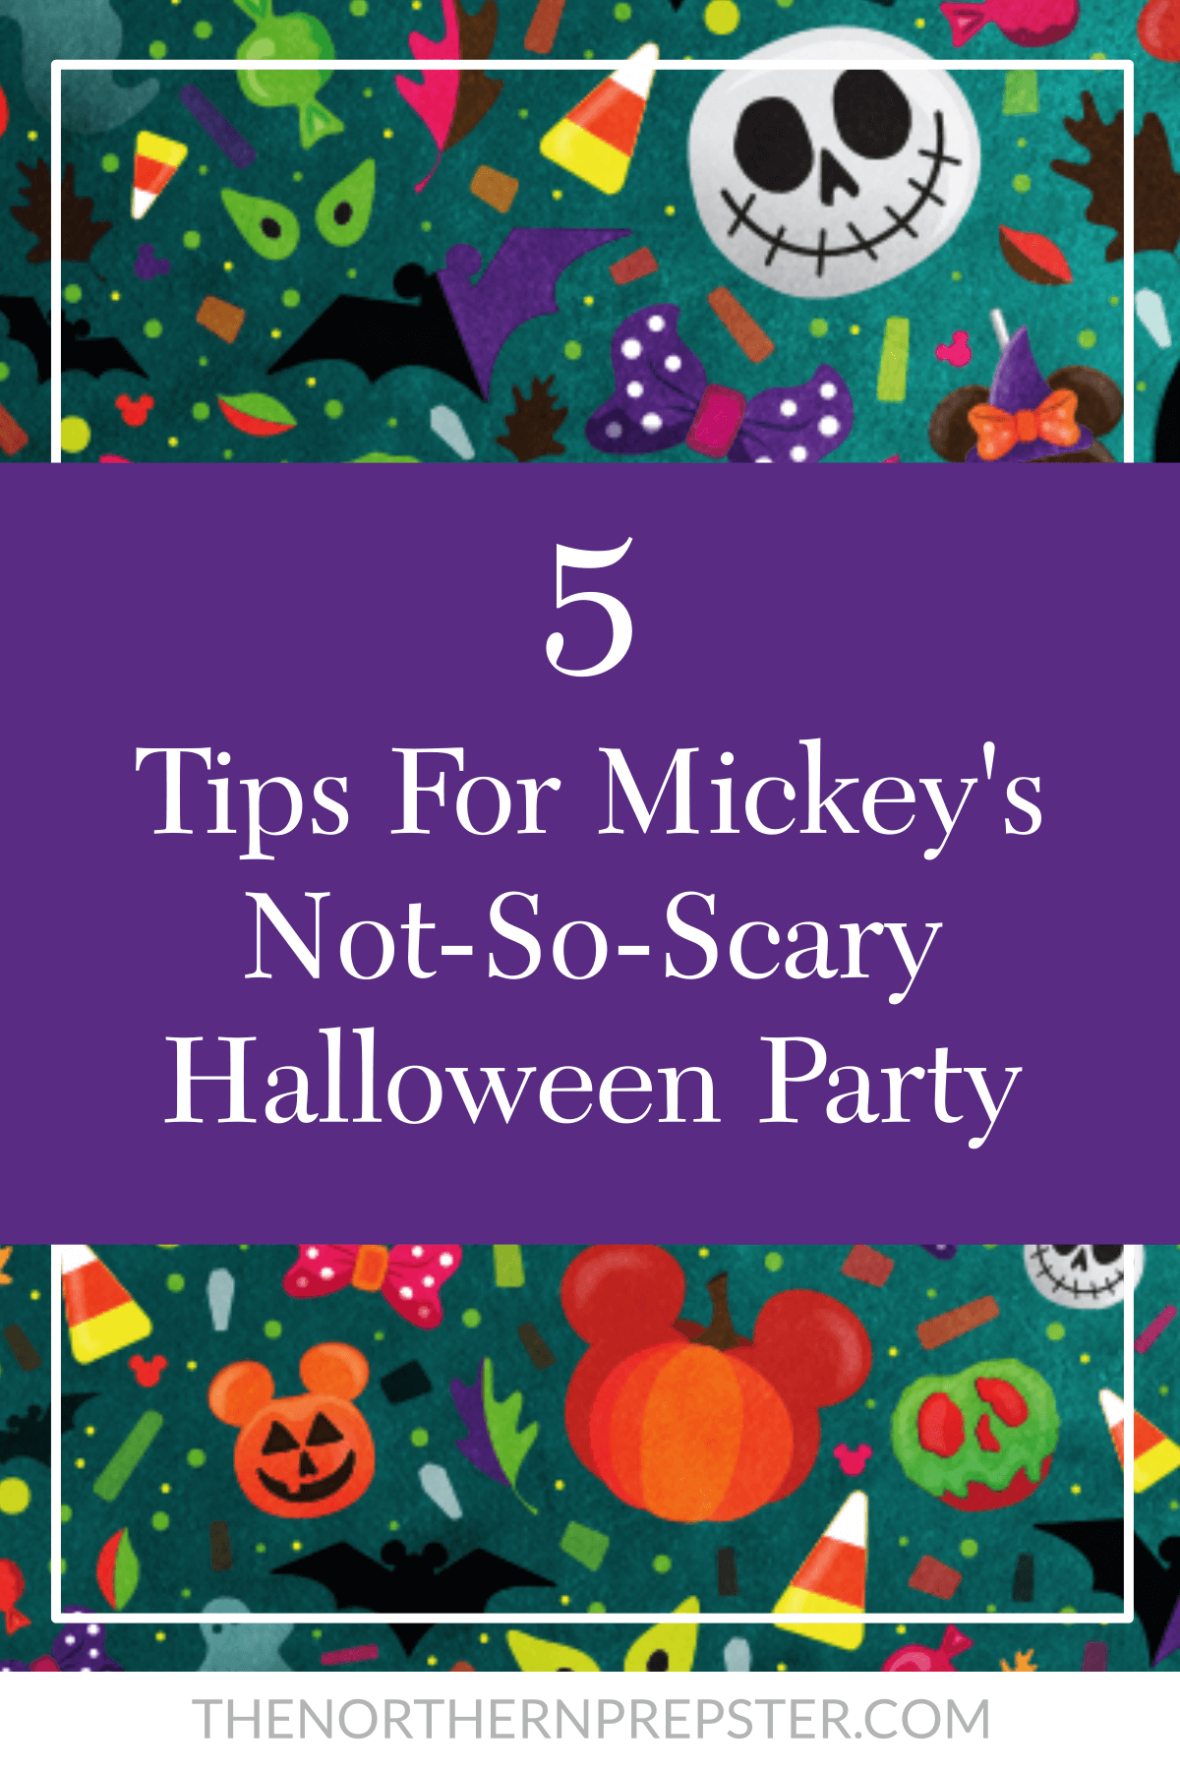 Mickey'S Not-So-Scary Halloween Party 2020 Meet And Greets 5 Tips for Mickey's Not So Scary Halloween Party 2019 – The